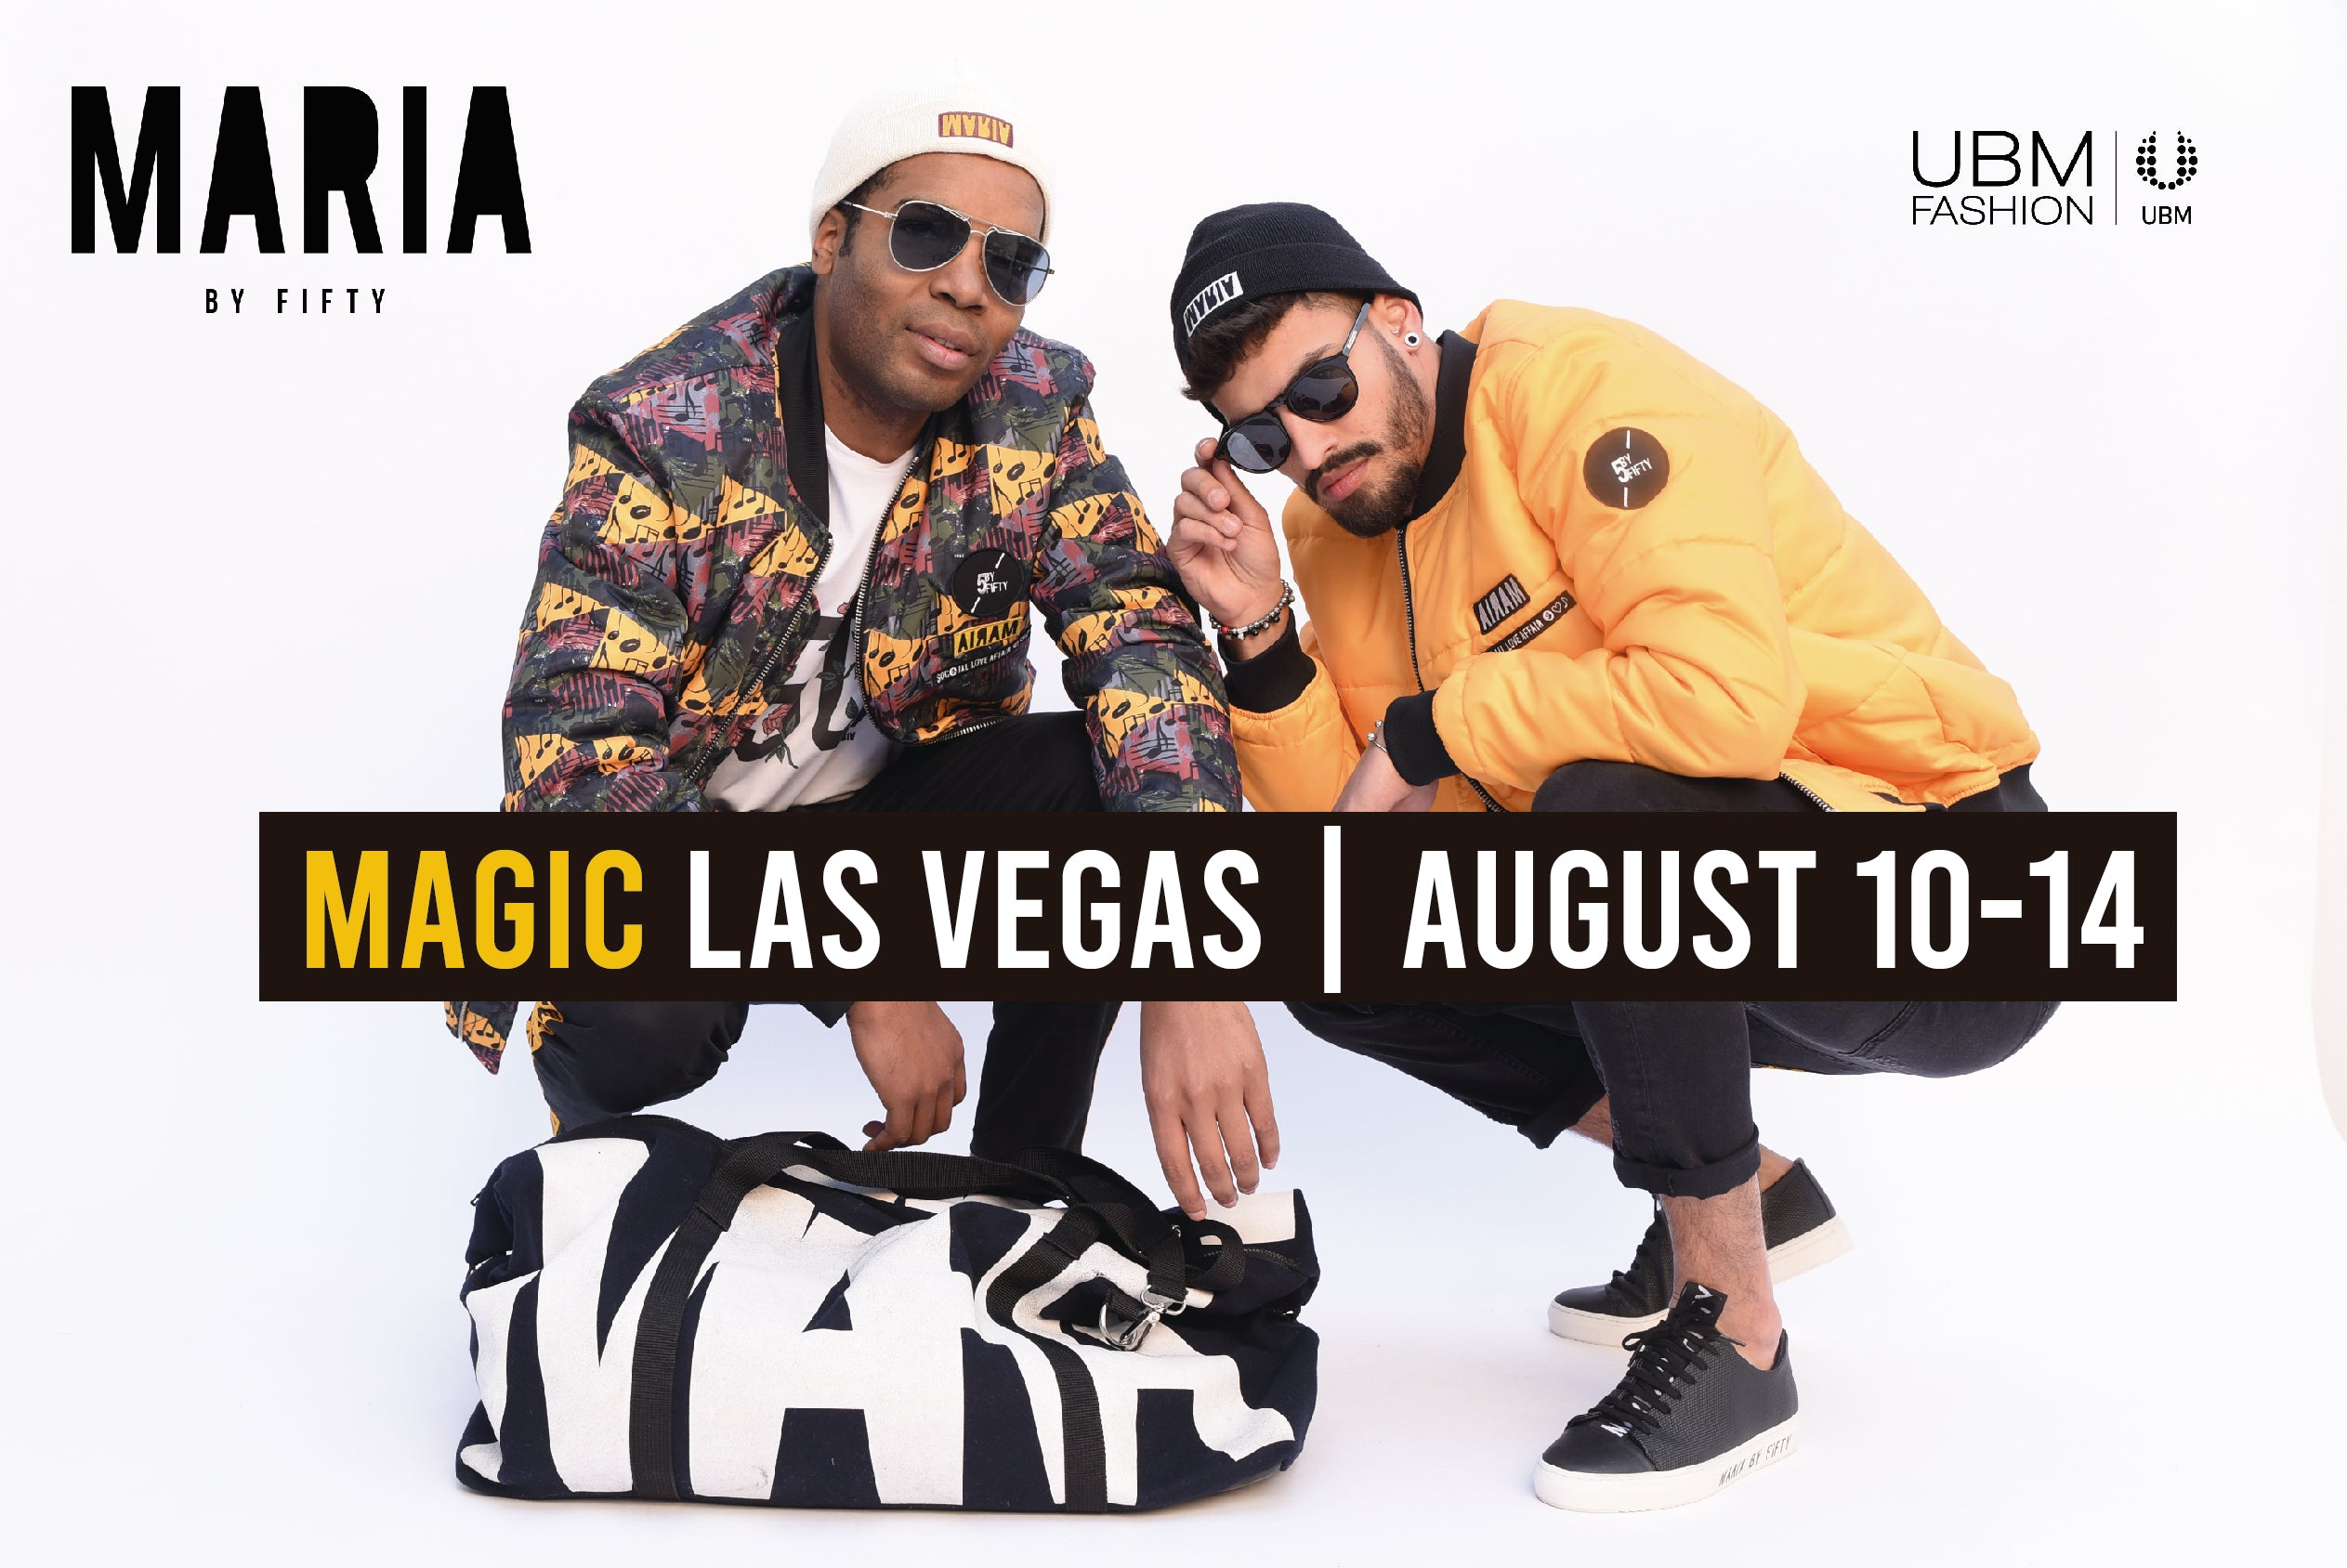 Portuguese Streetwear Brand confirms presence on the biggest American Fashion Convencion. Magic Las Vegas!